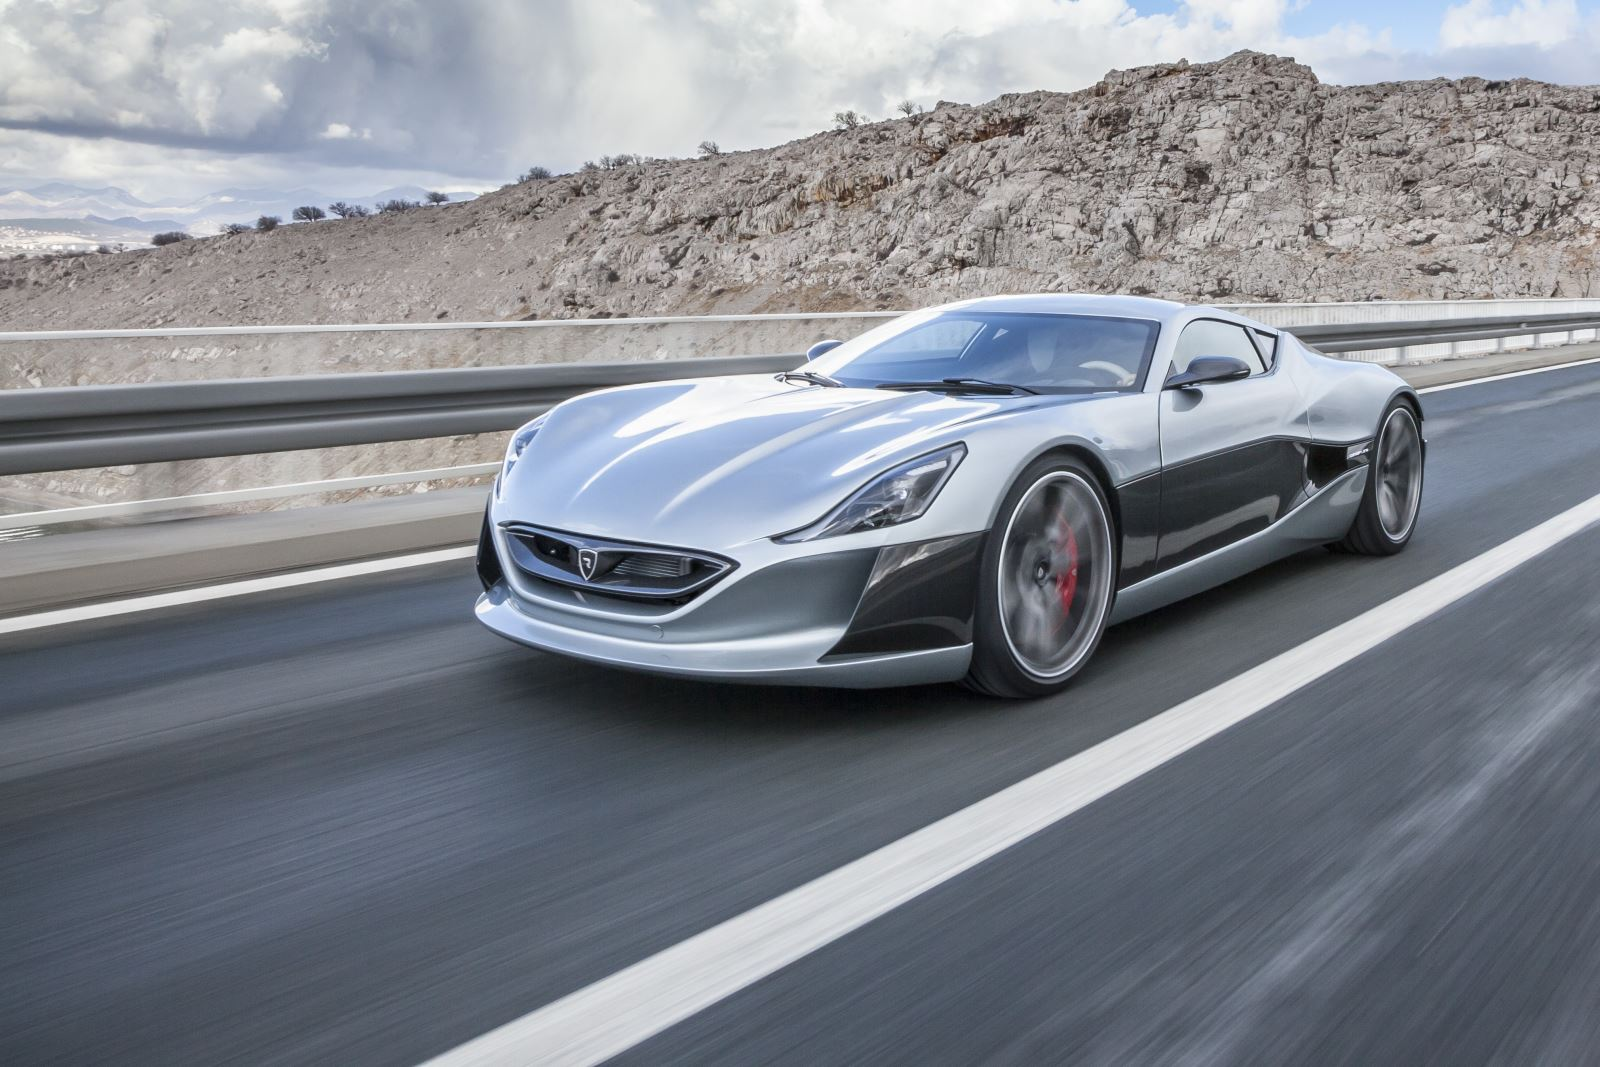 Croatia's Rimac to Unveil Production Version of World's First All-Electric Hypercar at Geneva Motor Show